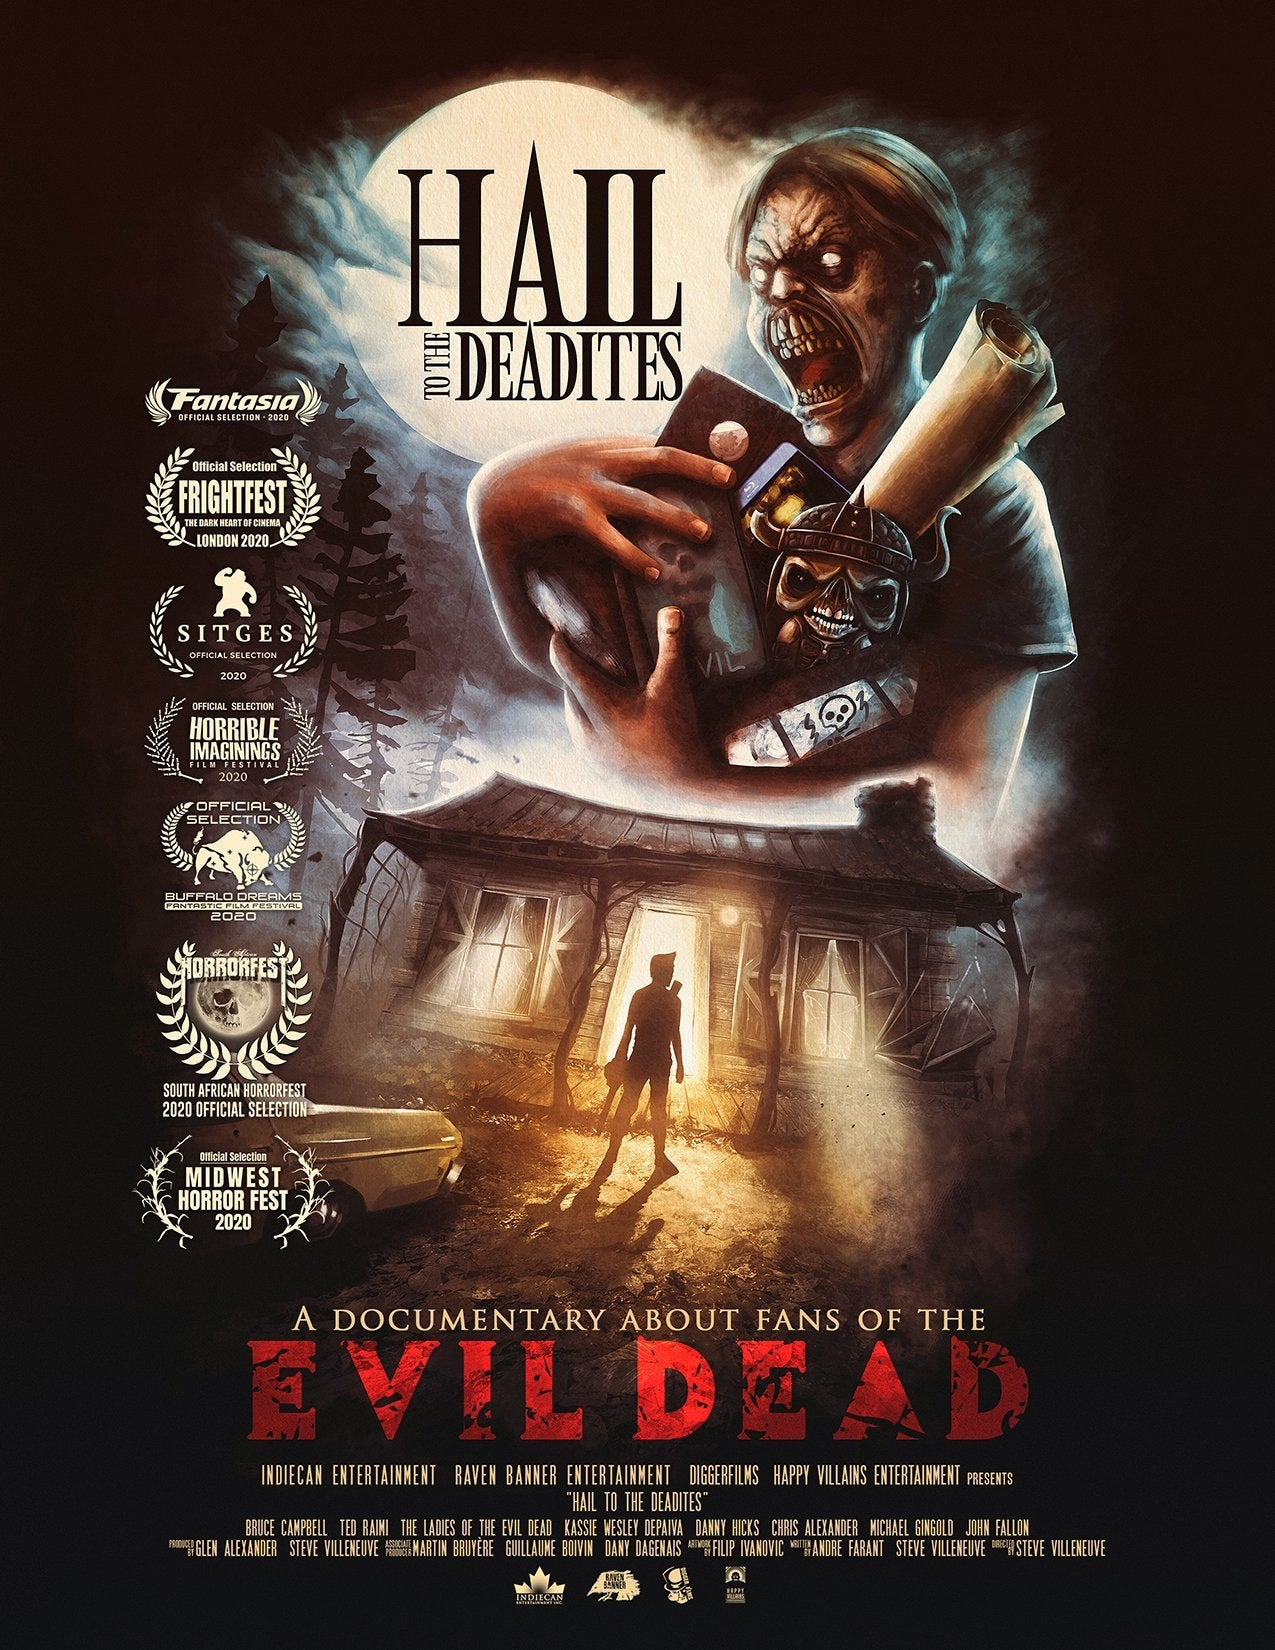 hail to the deadites movie poster